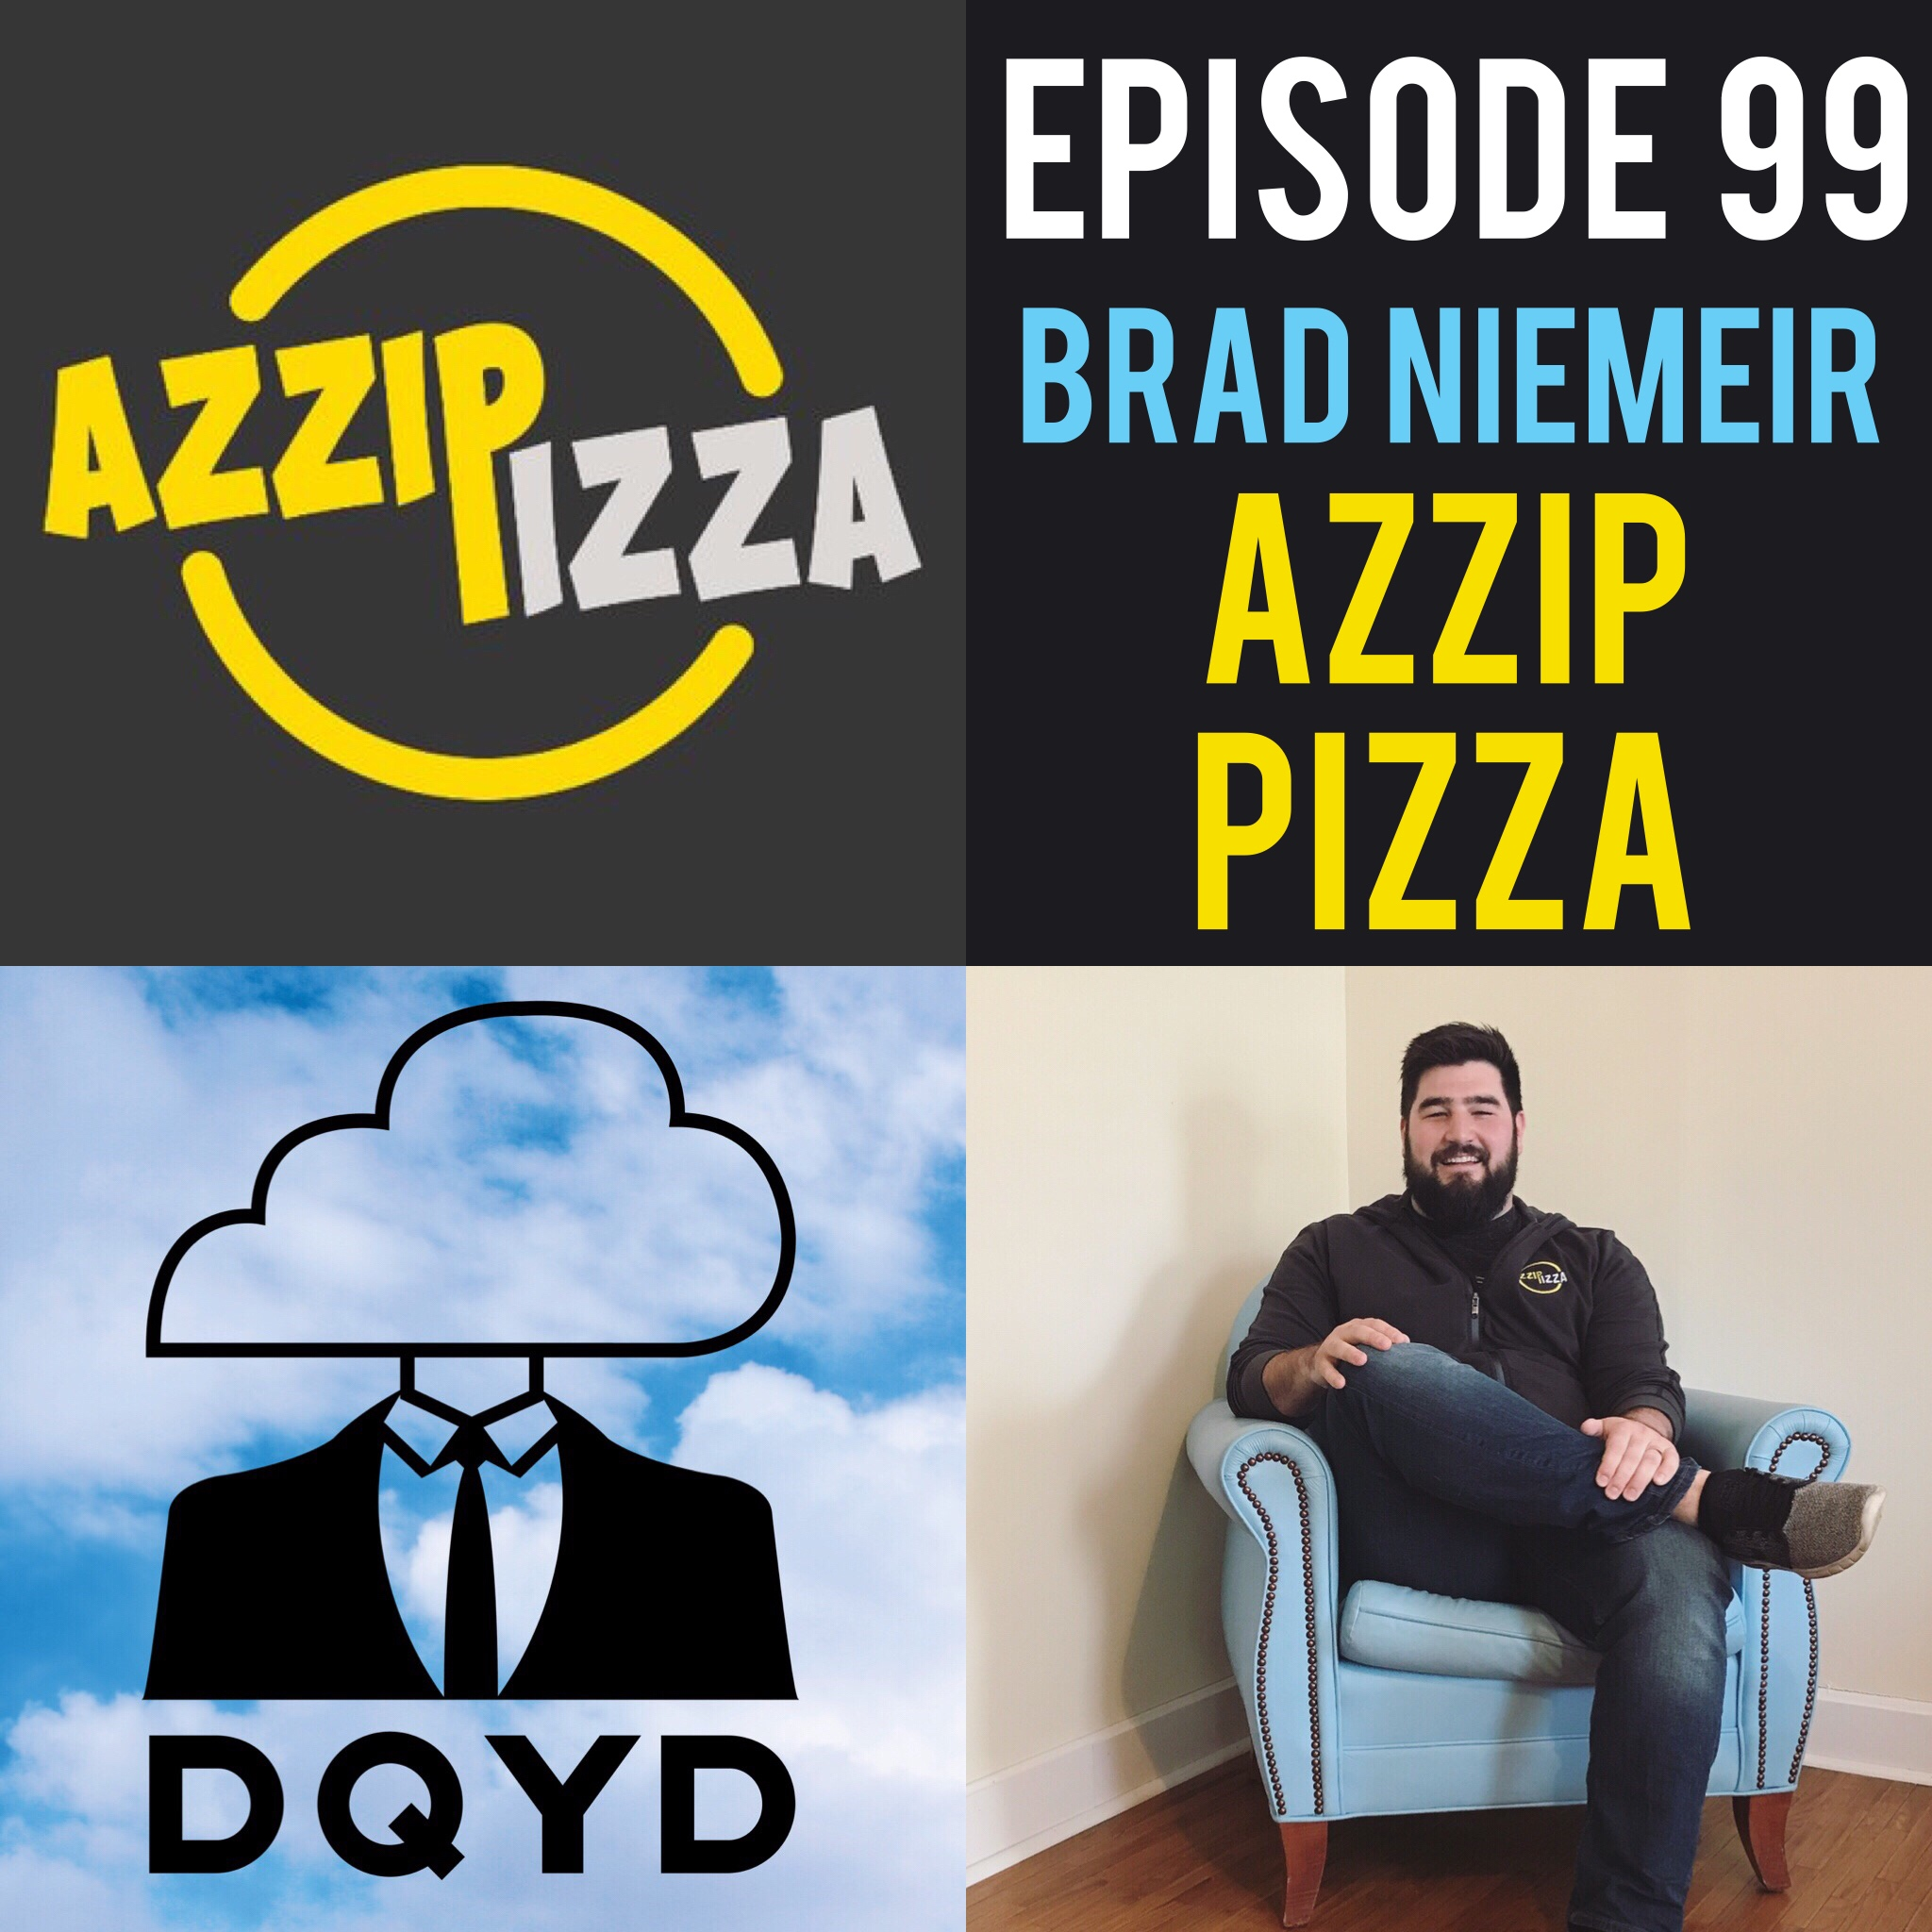 """Episode 99 with Pizza Entrepreneur: Brad Niemeier! We chat with Brad, the owner of Azzip Pizza, about cultivating a business idea through college and unleashing it on the taste buds of Indiana. We discuss perfecting recipes, looking at locations and what one needs to do to start a business. Go grab you some Azzip, you'll thank us later!  Song of the week is """"Walter's Dream"""" by the fantastic Cool Mutants! Check em out: https://coolmutants.bandcamp.com/"""